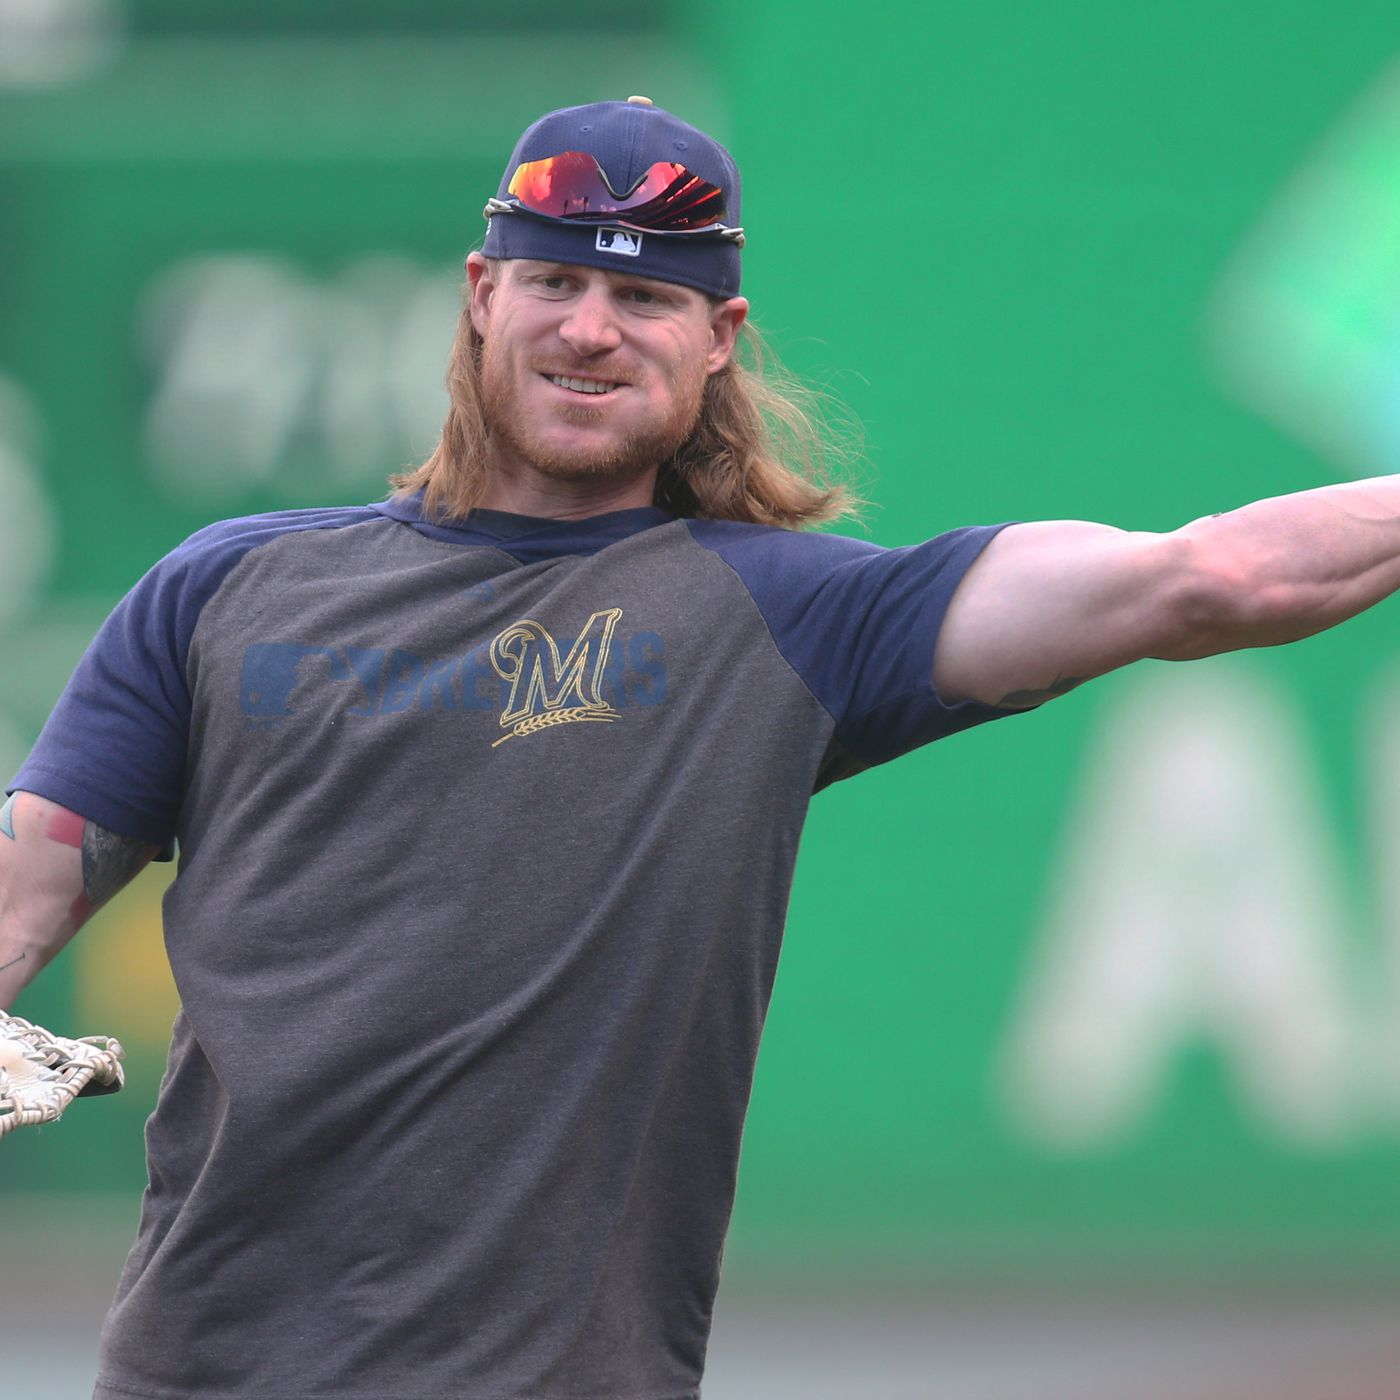 The 28-year old son of father (?) and mother(?) Ben Gamel in 2020 photo. Ben Gamel earned a million dollar salary - leaving the net worth at million in 2020